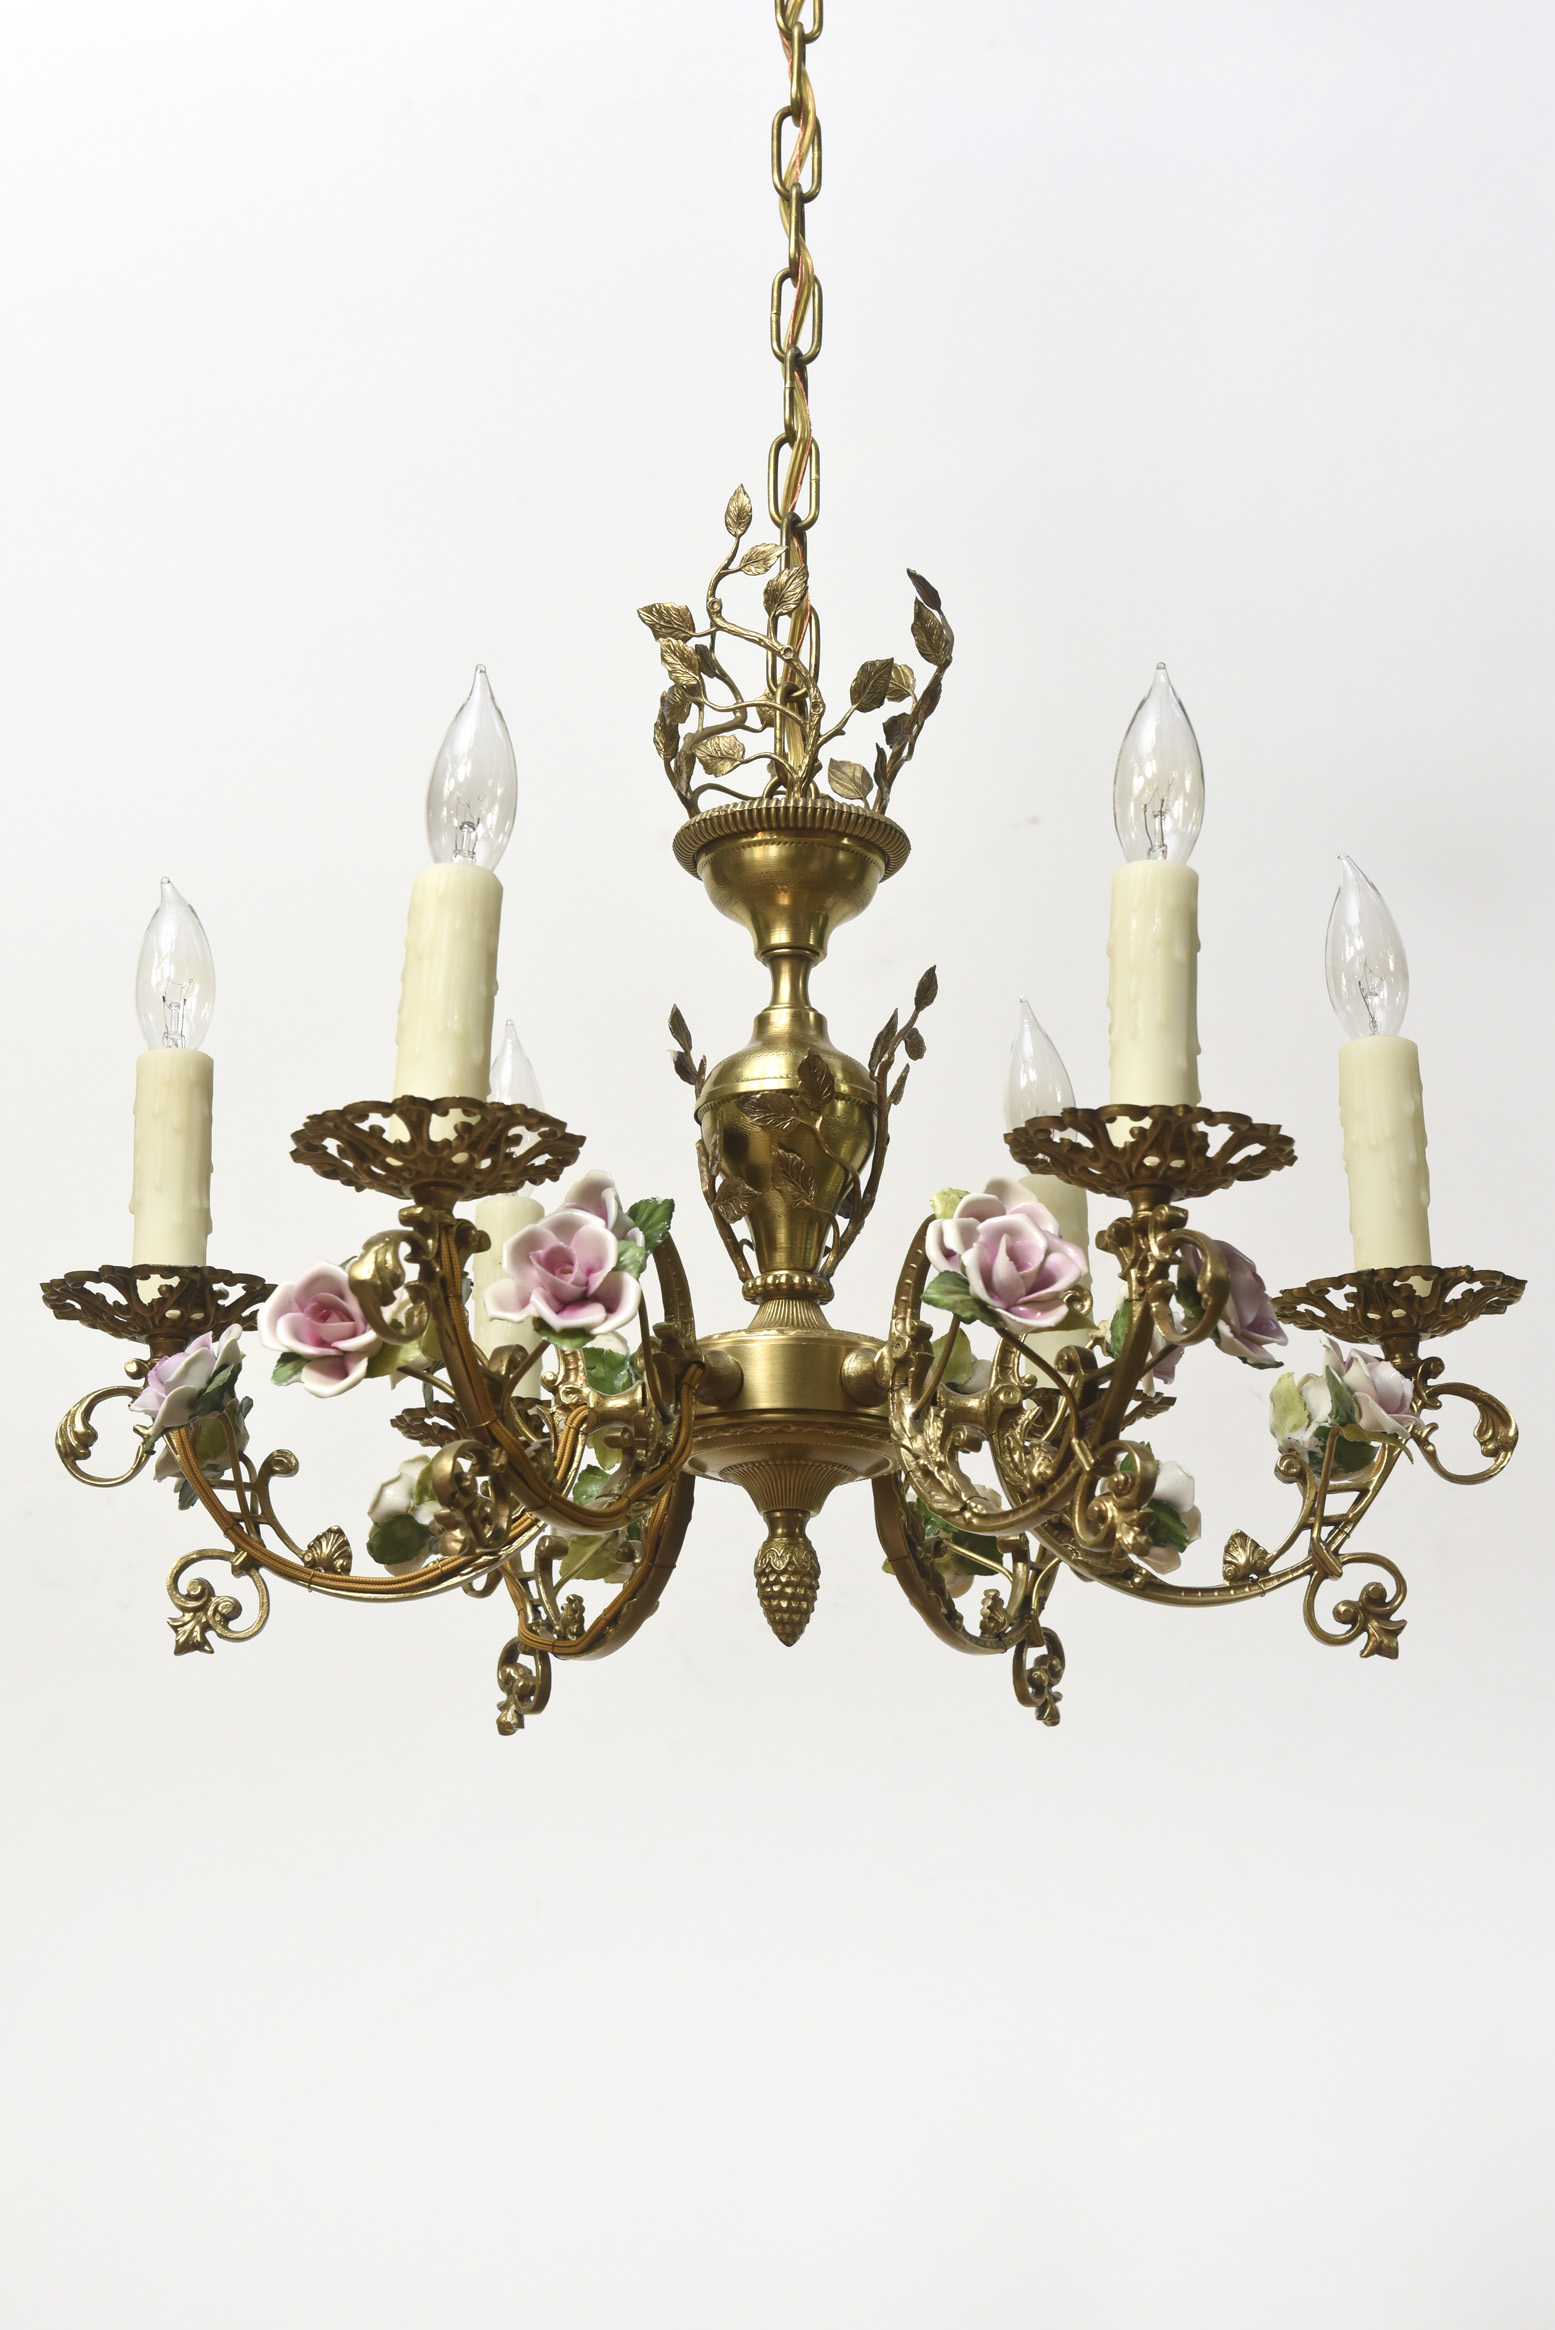 Six Light French Chandelier With Porcelain Roses